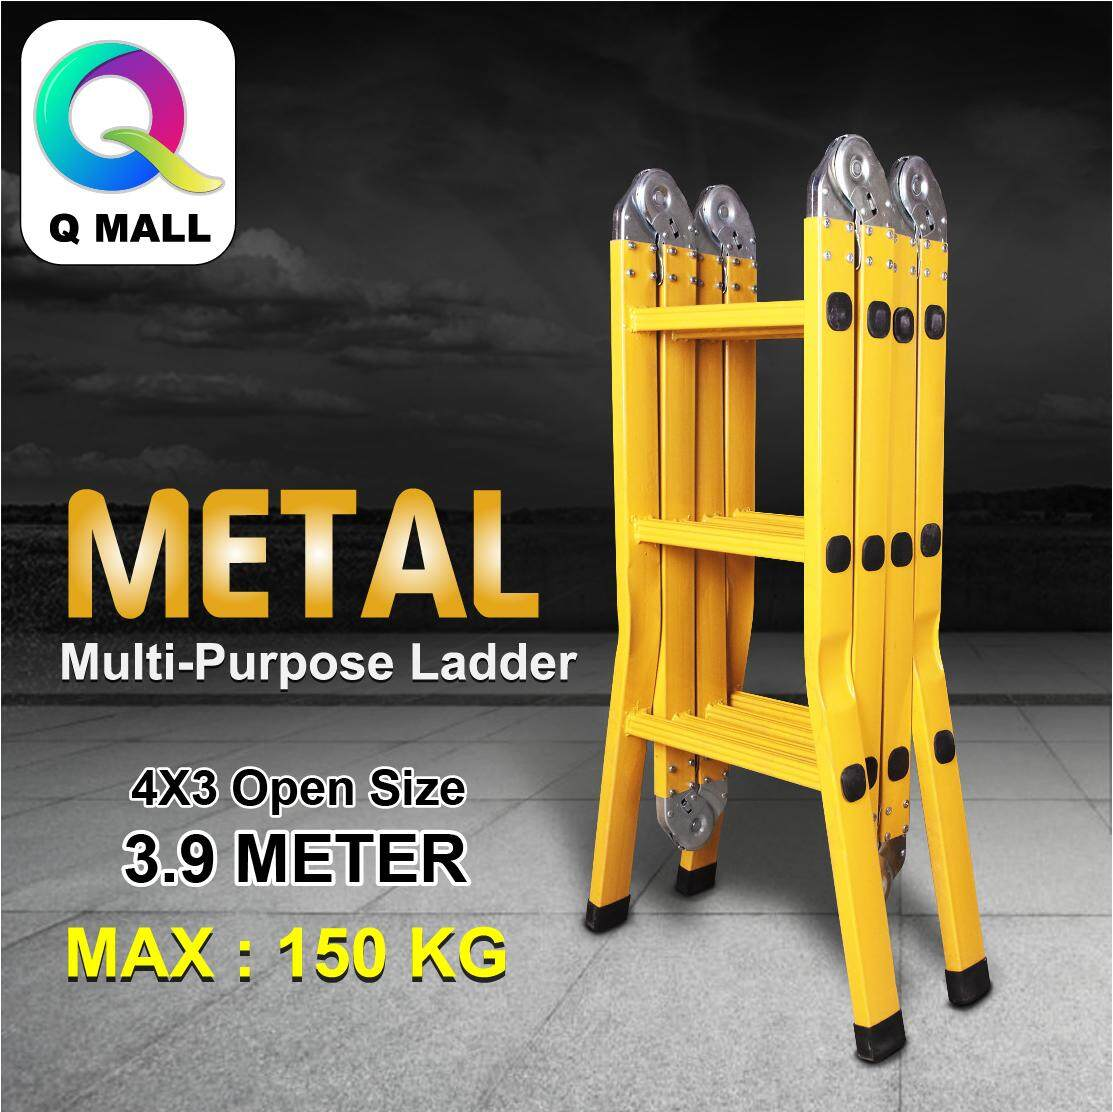 Q MALL Metal Multipurpose Ladder 12  Steps Folding Ladder Medium Duty Tangga 3.9meter (Yellow)